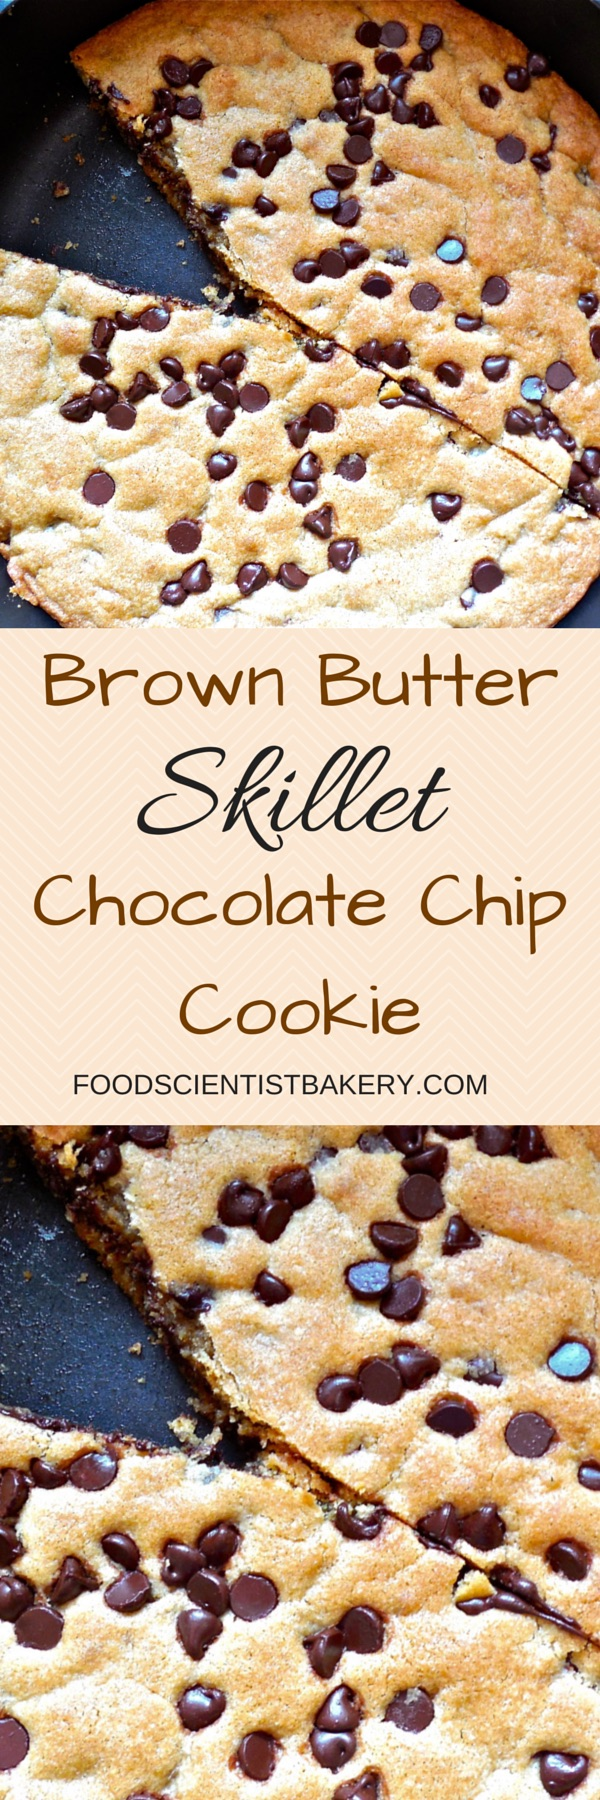 Brown Butter Skillet Chocolate Chip Cookie